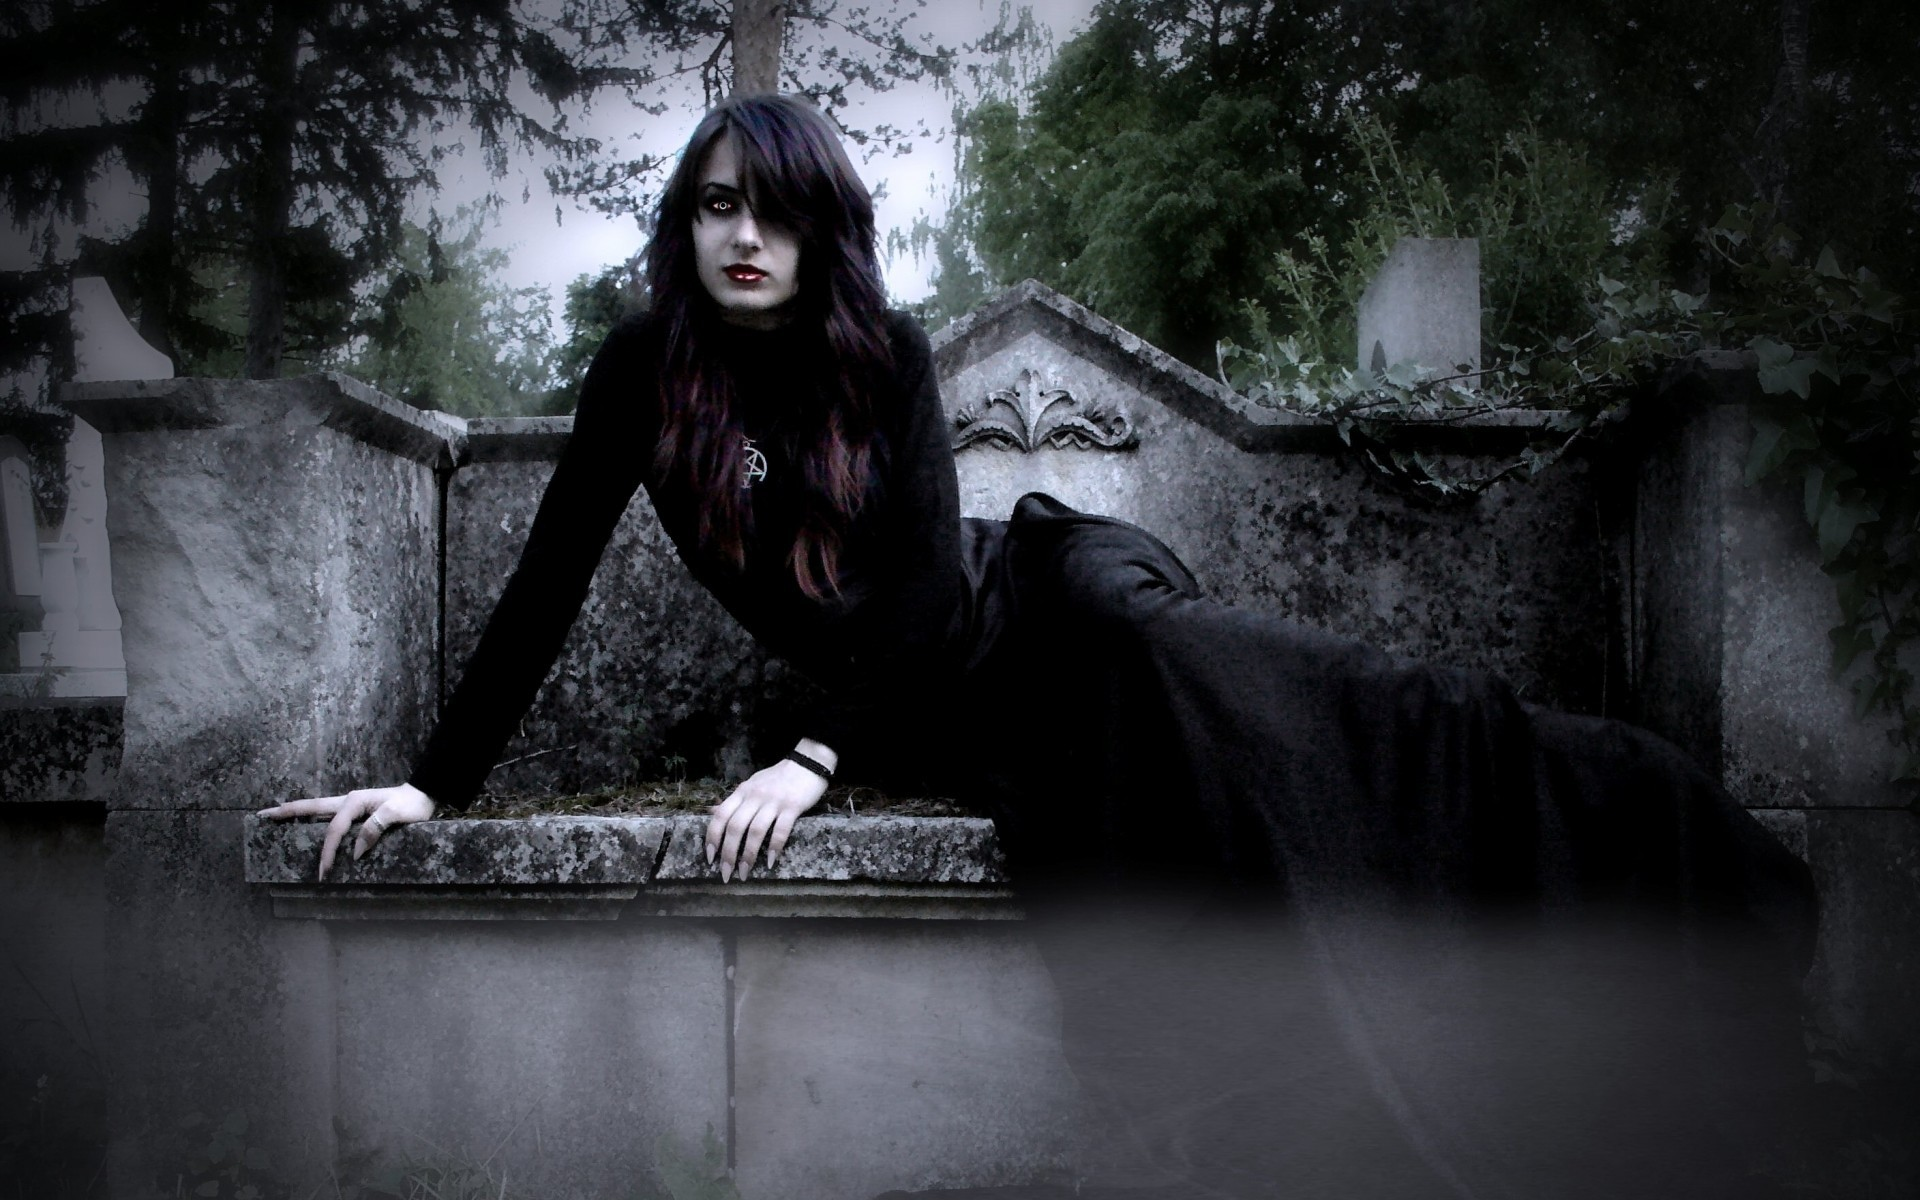 Awesome Vampire Dark Wallpaper Android Images